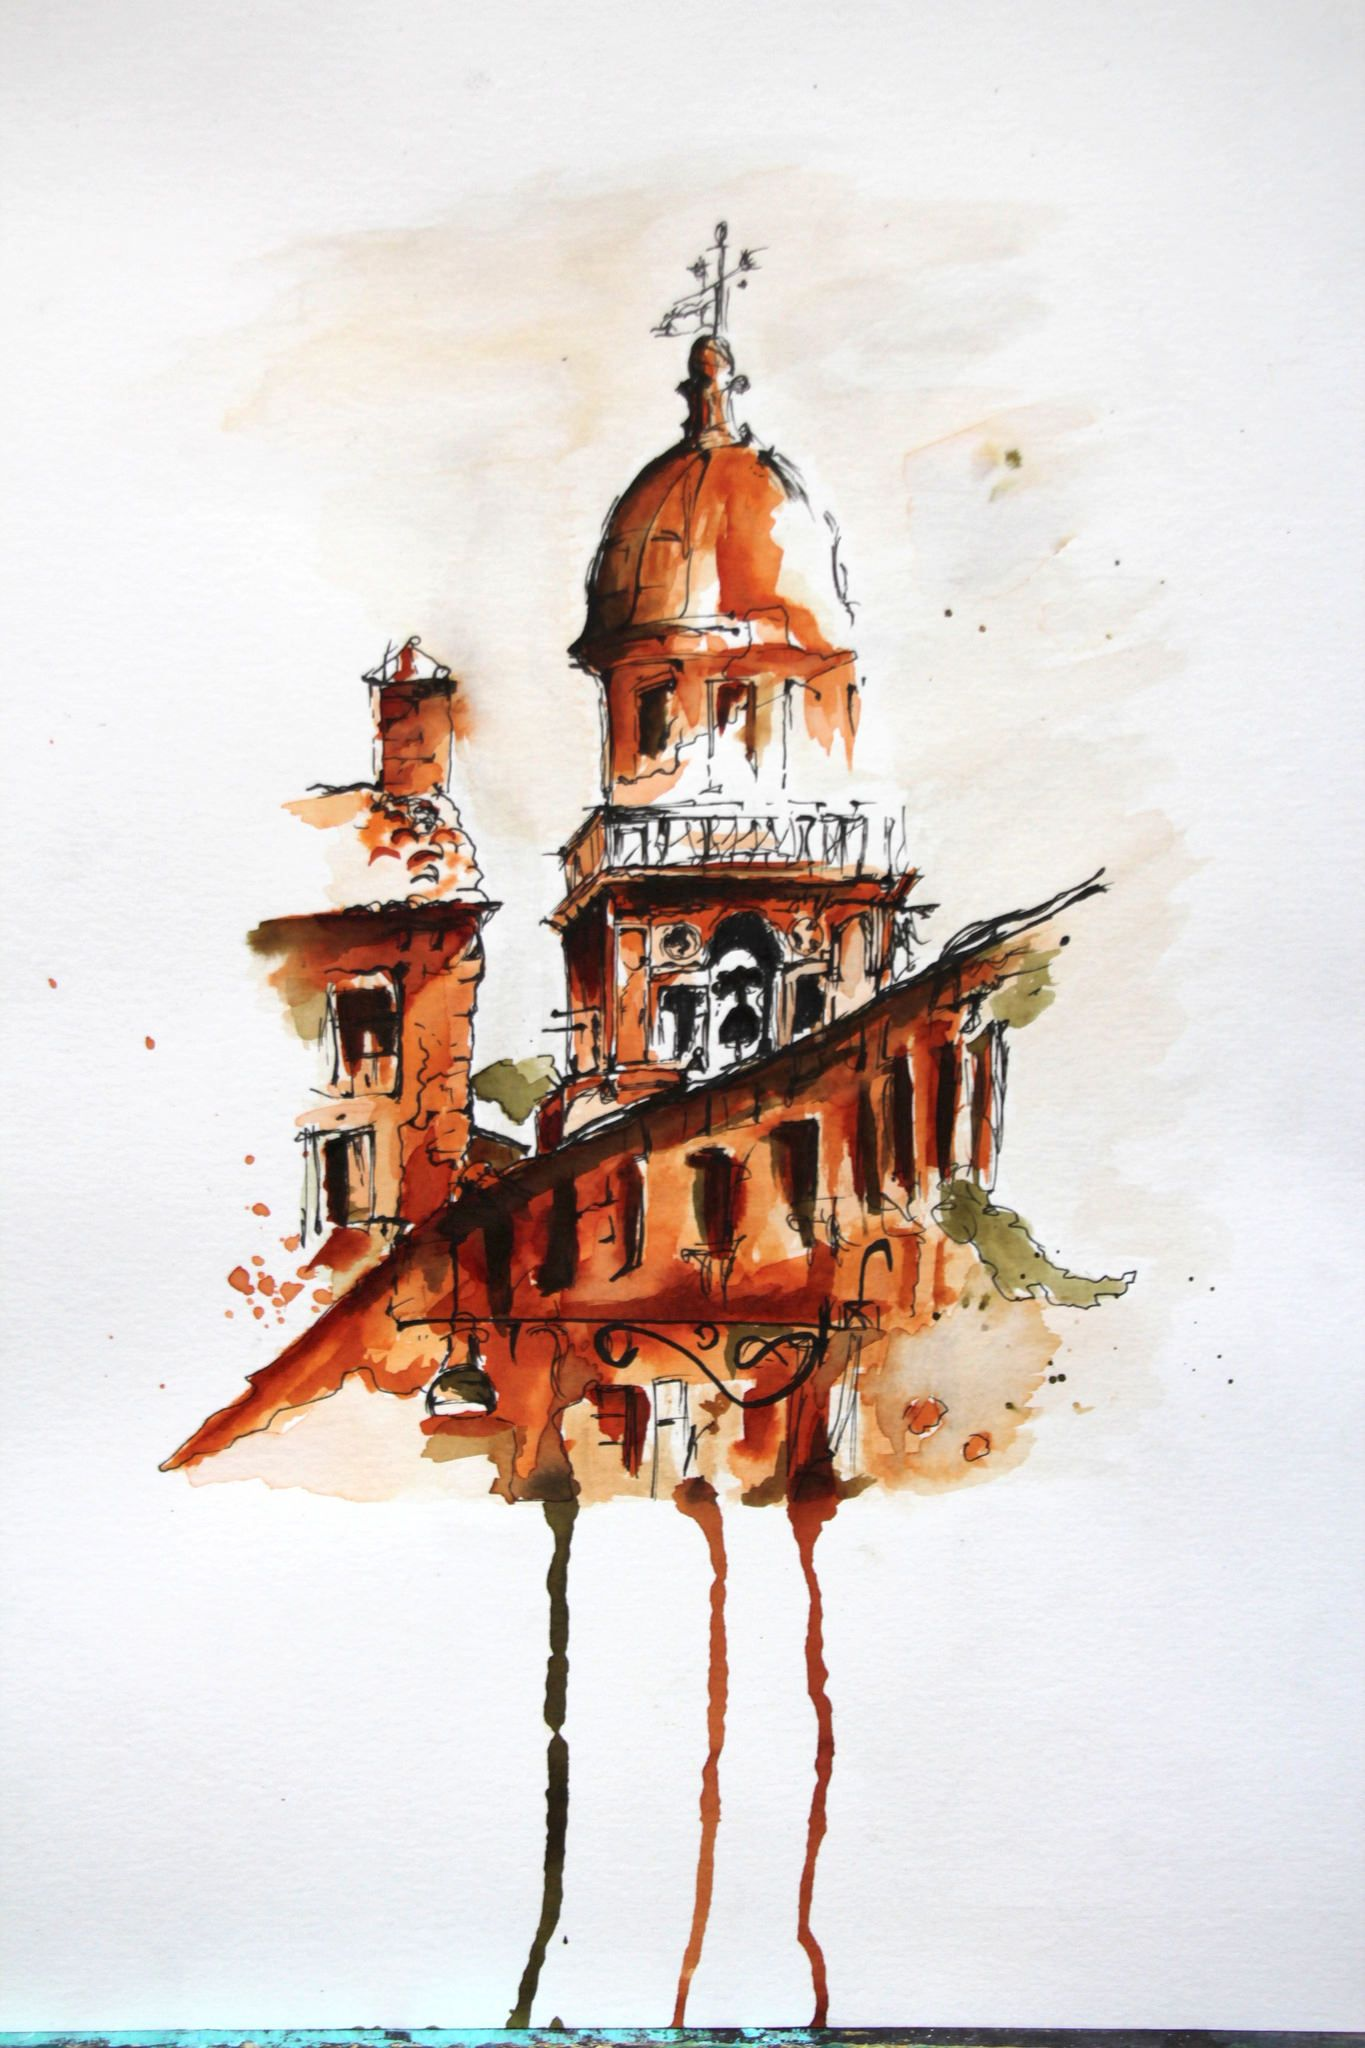 To view more from this Artist please visit: https://www.flickr.com/photos/academiataure/